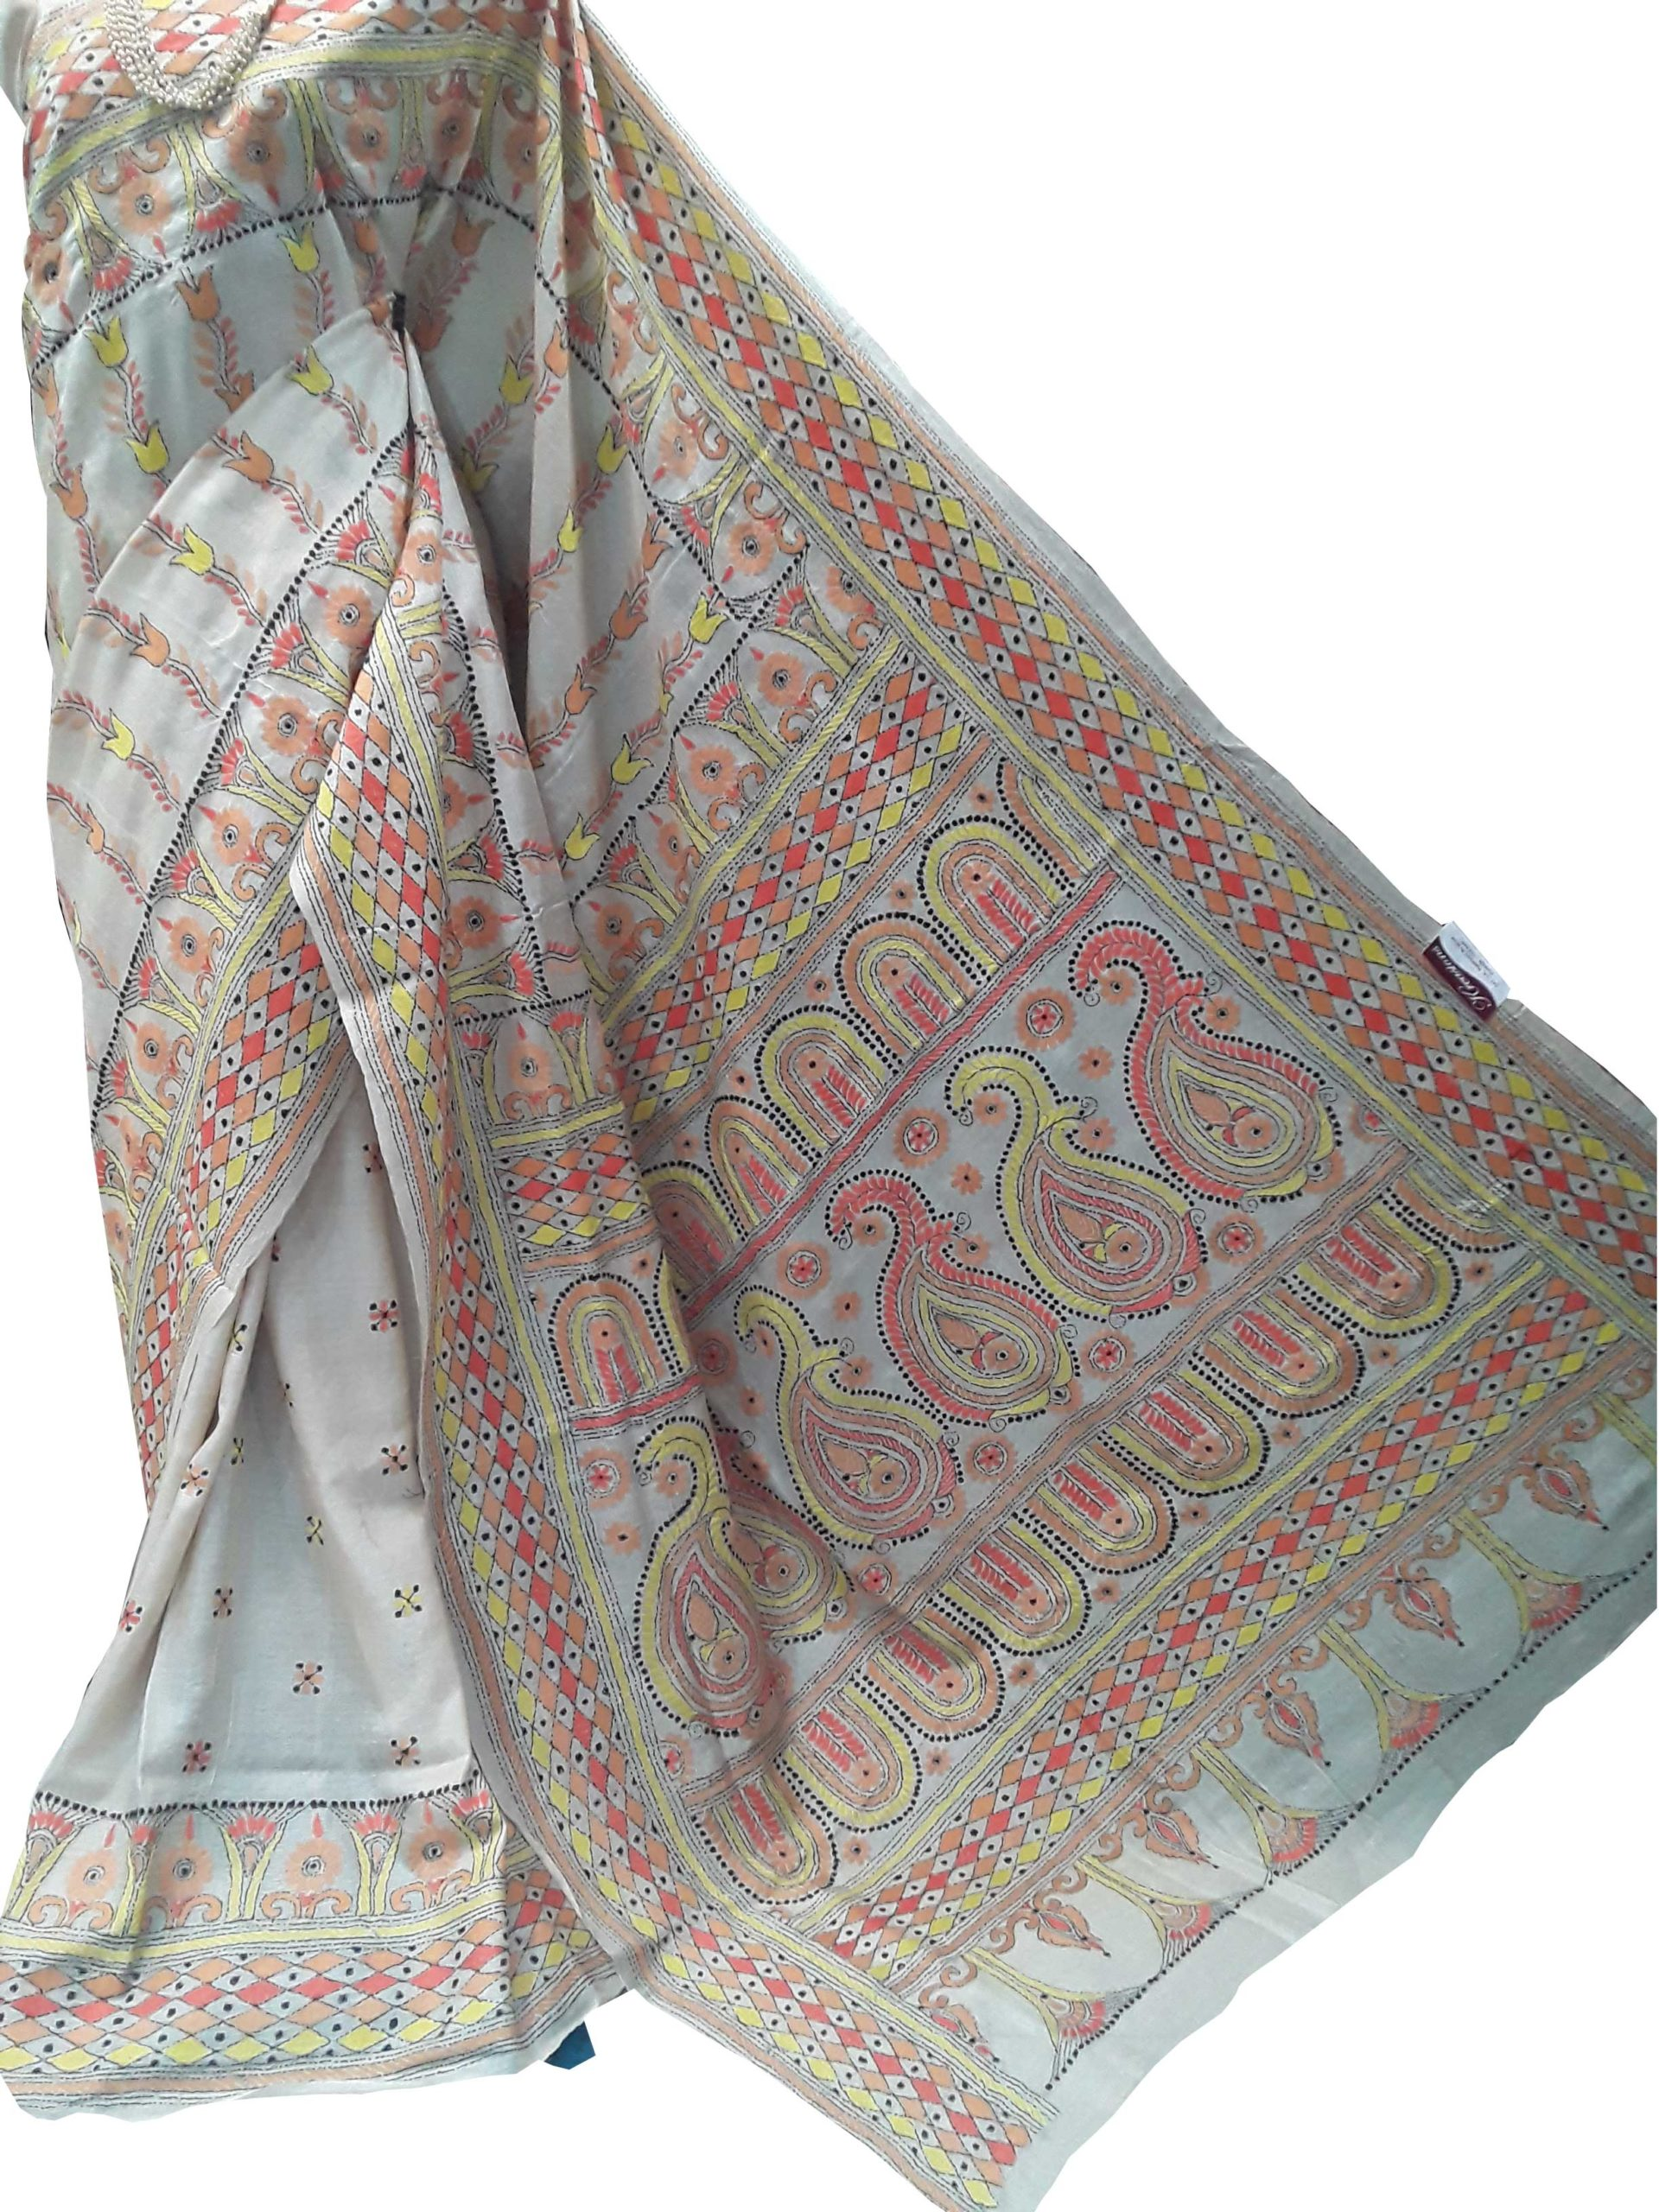 KANTHA hand embroidered Sarees 3